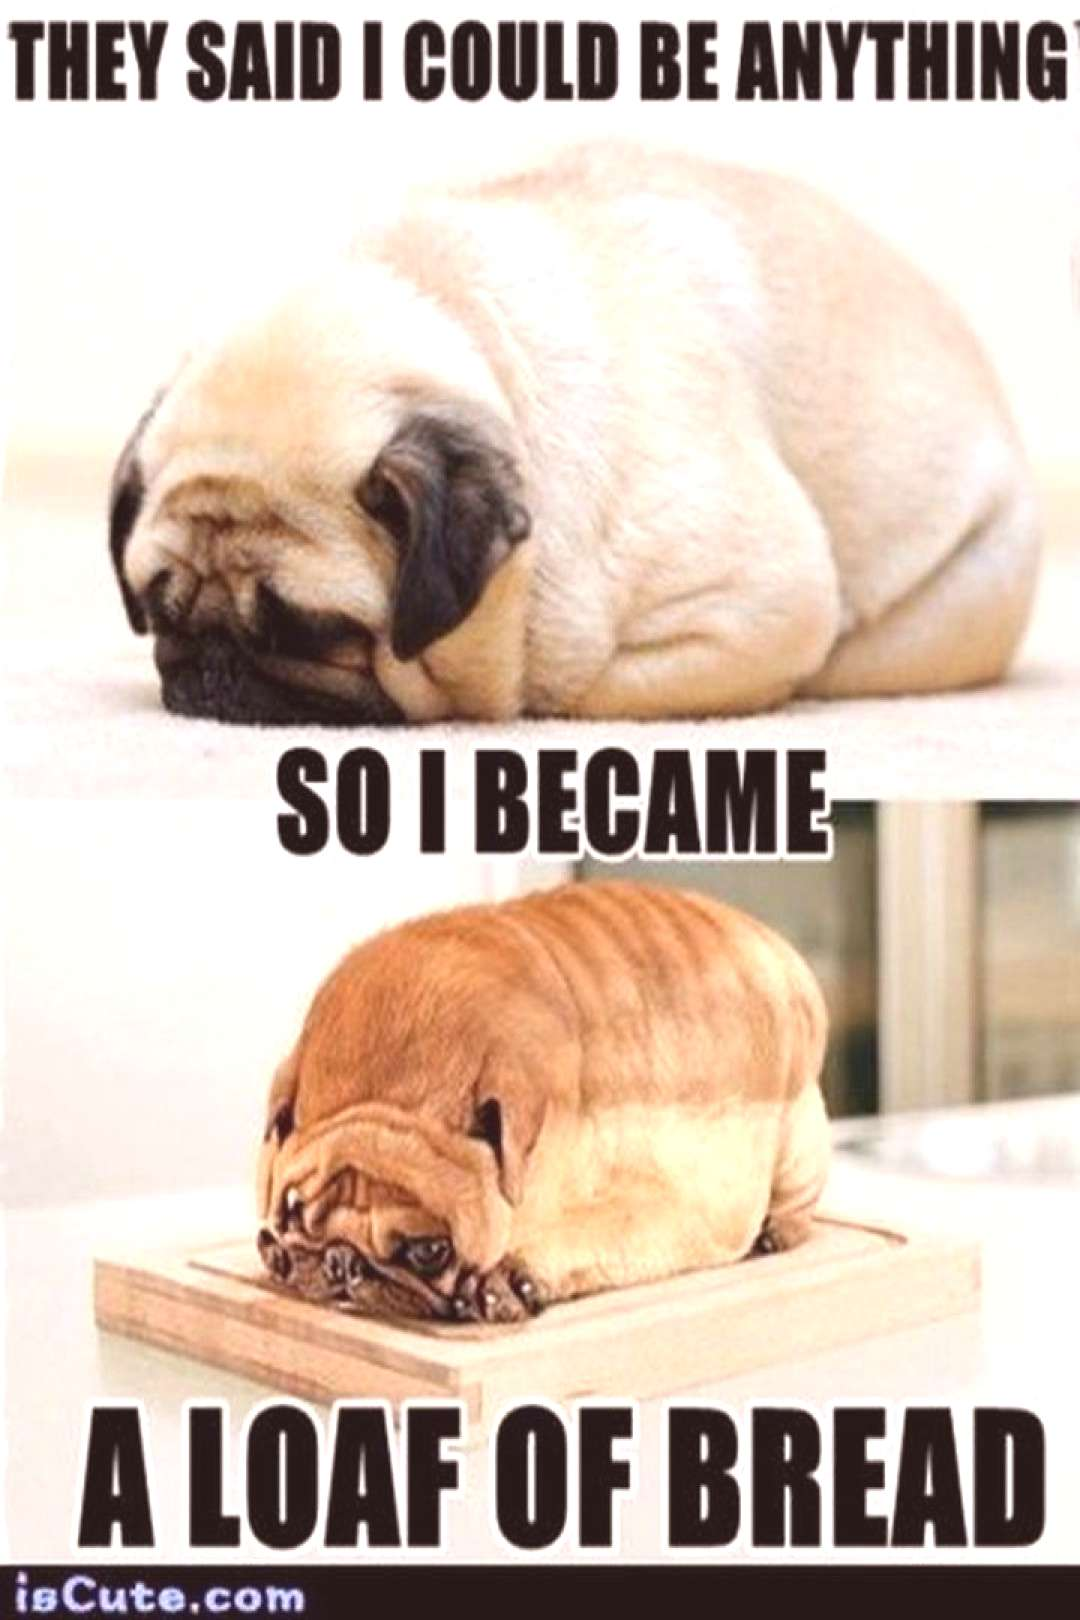 101 Cute Pug Memes - quotThey said I could be anything so I became a loaf of bread.quot